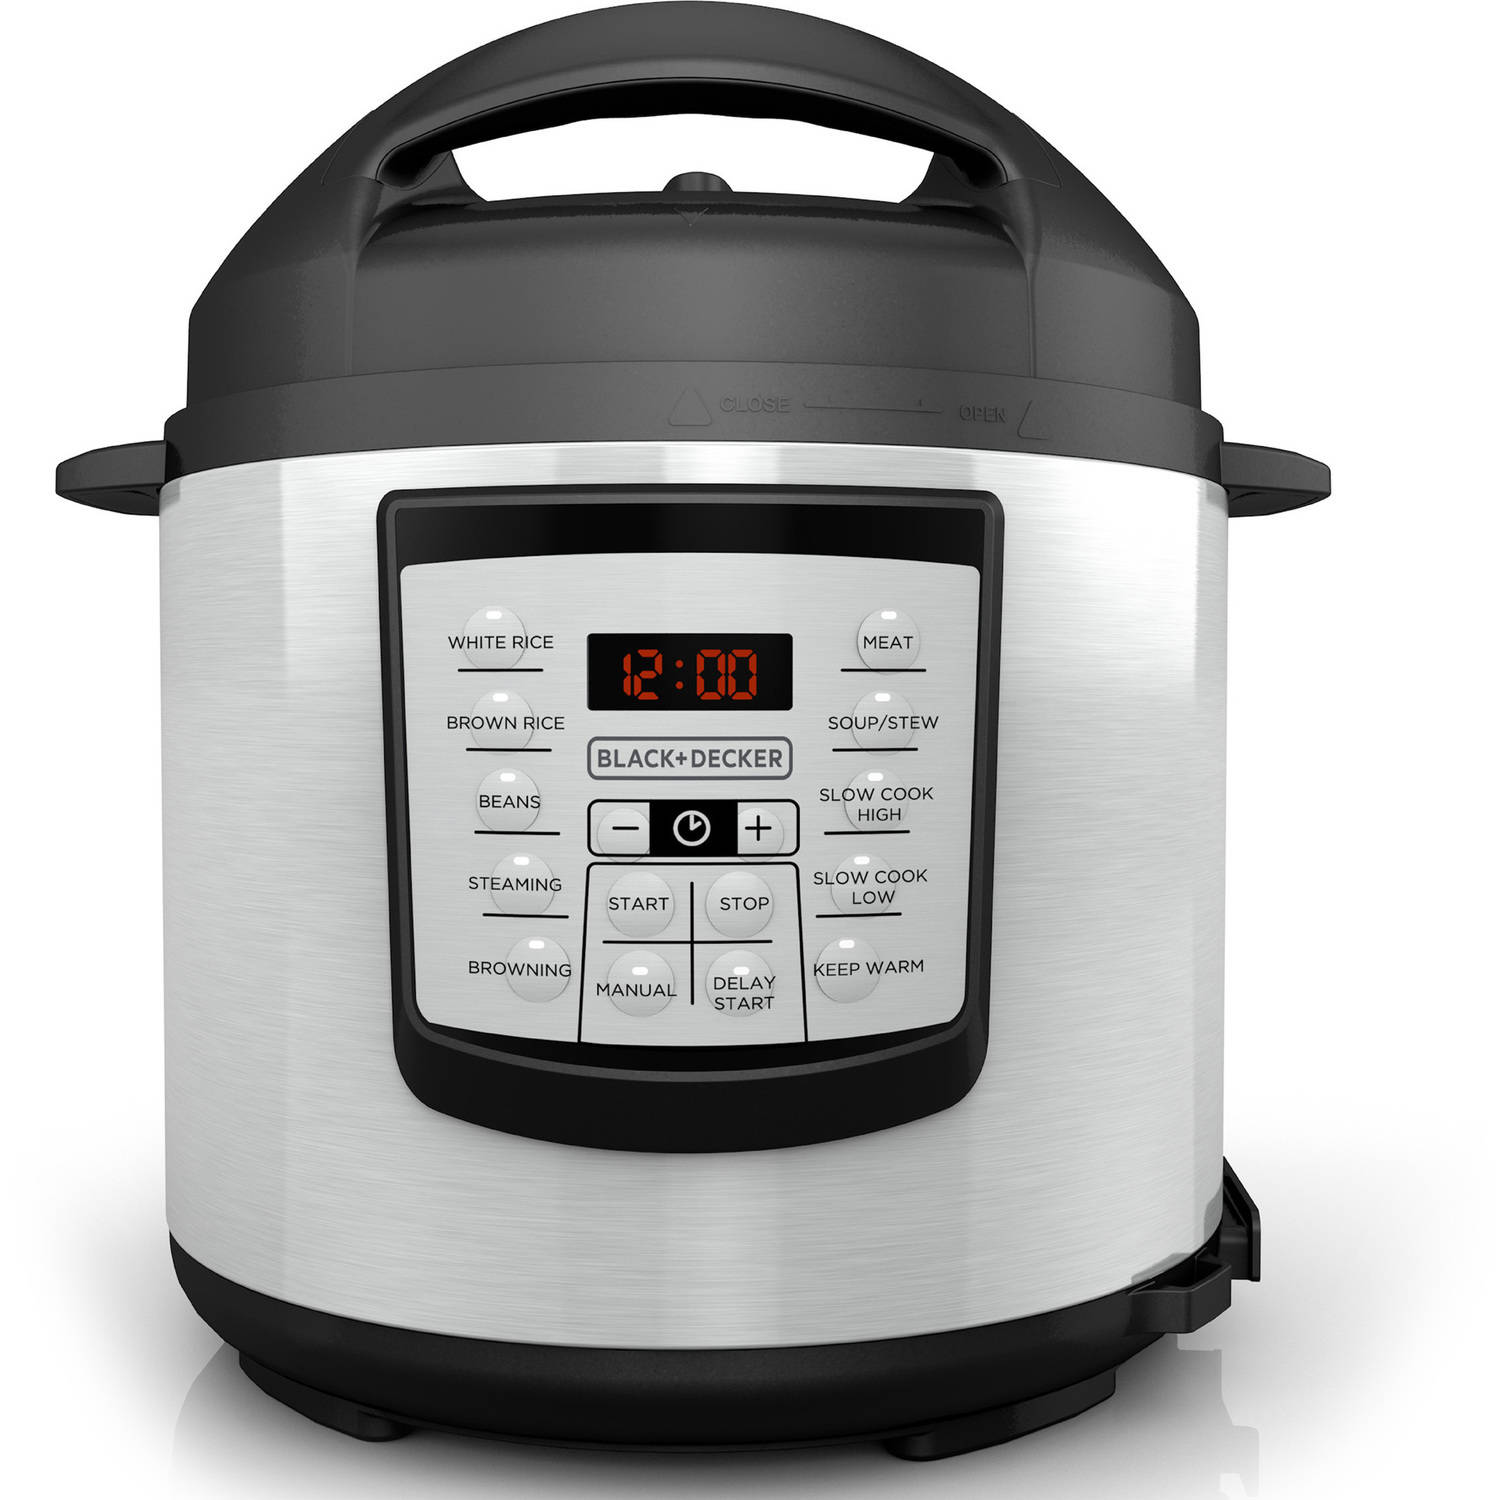 BLACK+DECKER 6 qt Digital Pressure Cooker, PR100 by Black & Decker